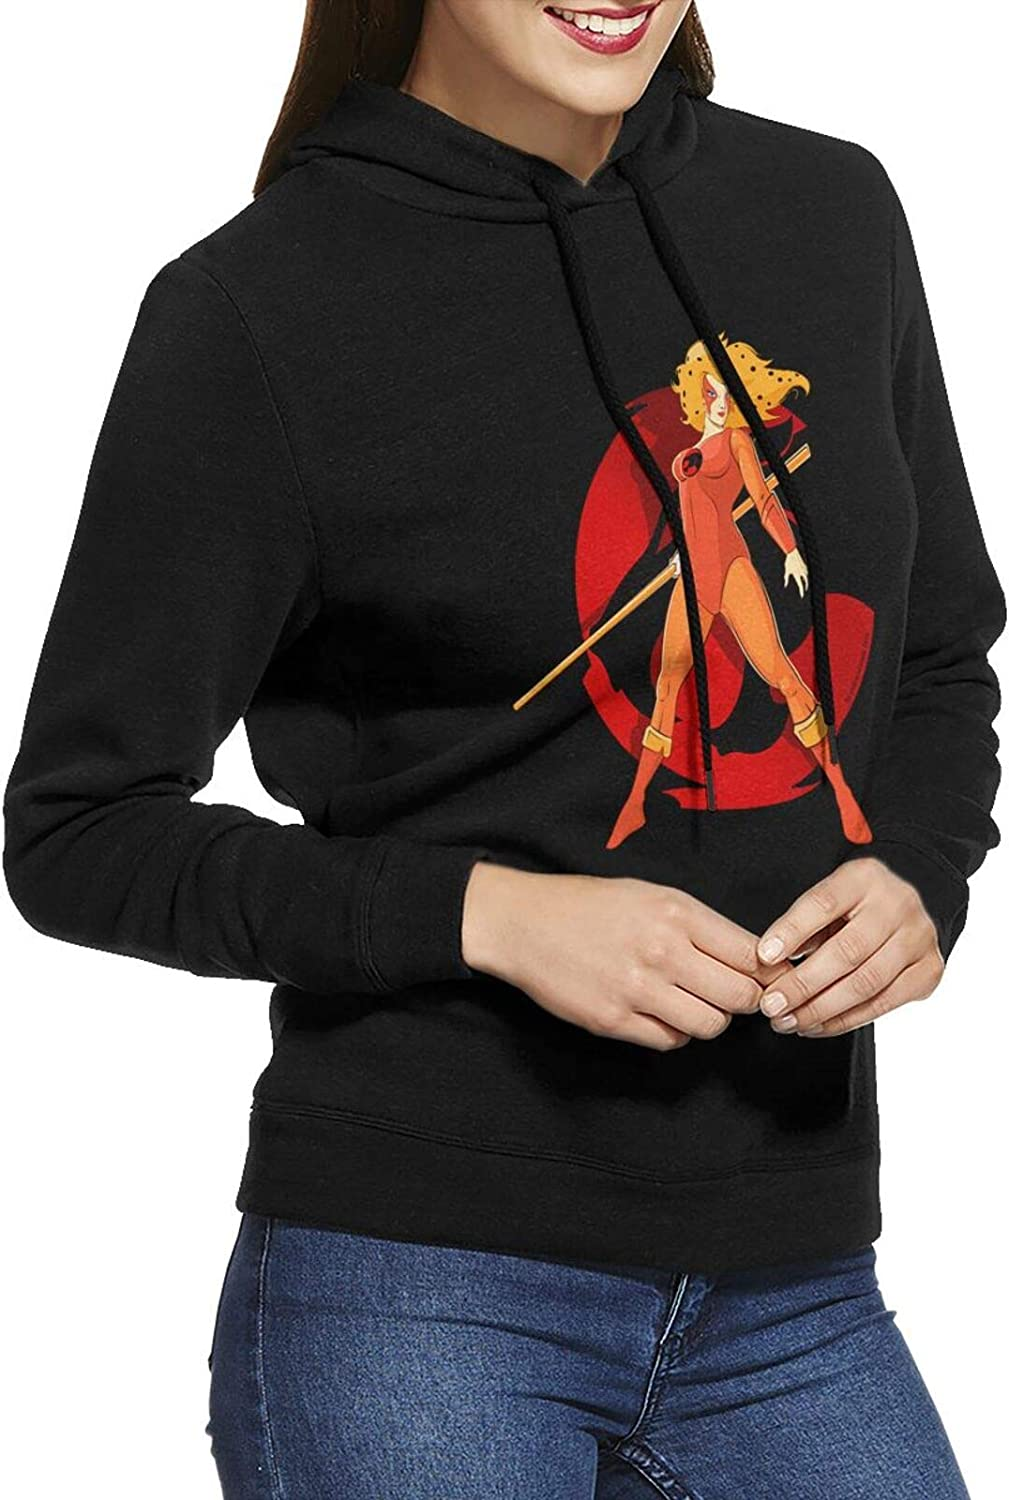 5 ☆ popular Thundercats Sale special price Hoodie Womens Casual Long Cotton Sweatshirts Sleeve